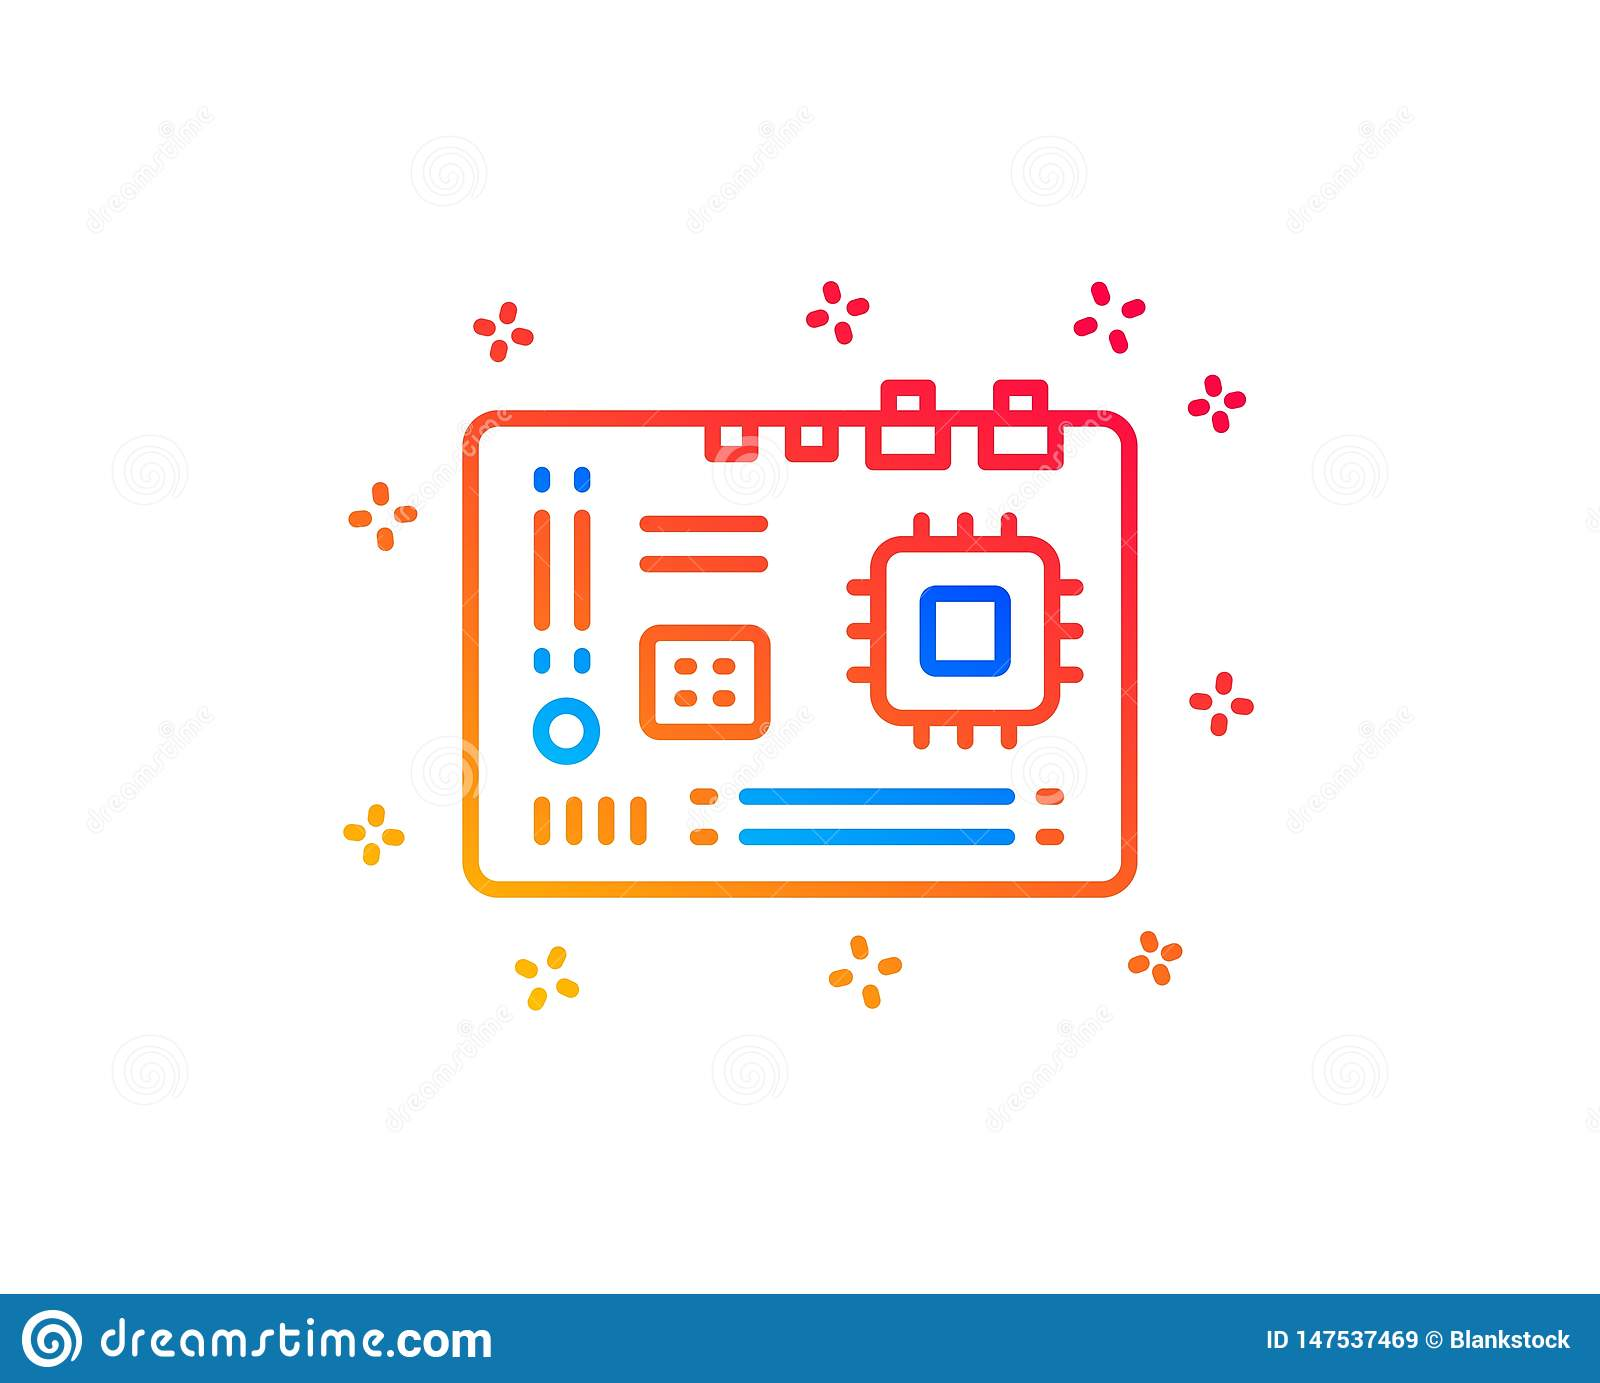 Motherboard line icon. Computer component hardware sign. Vector